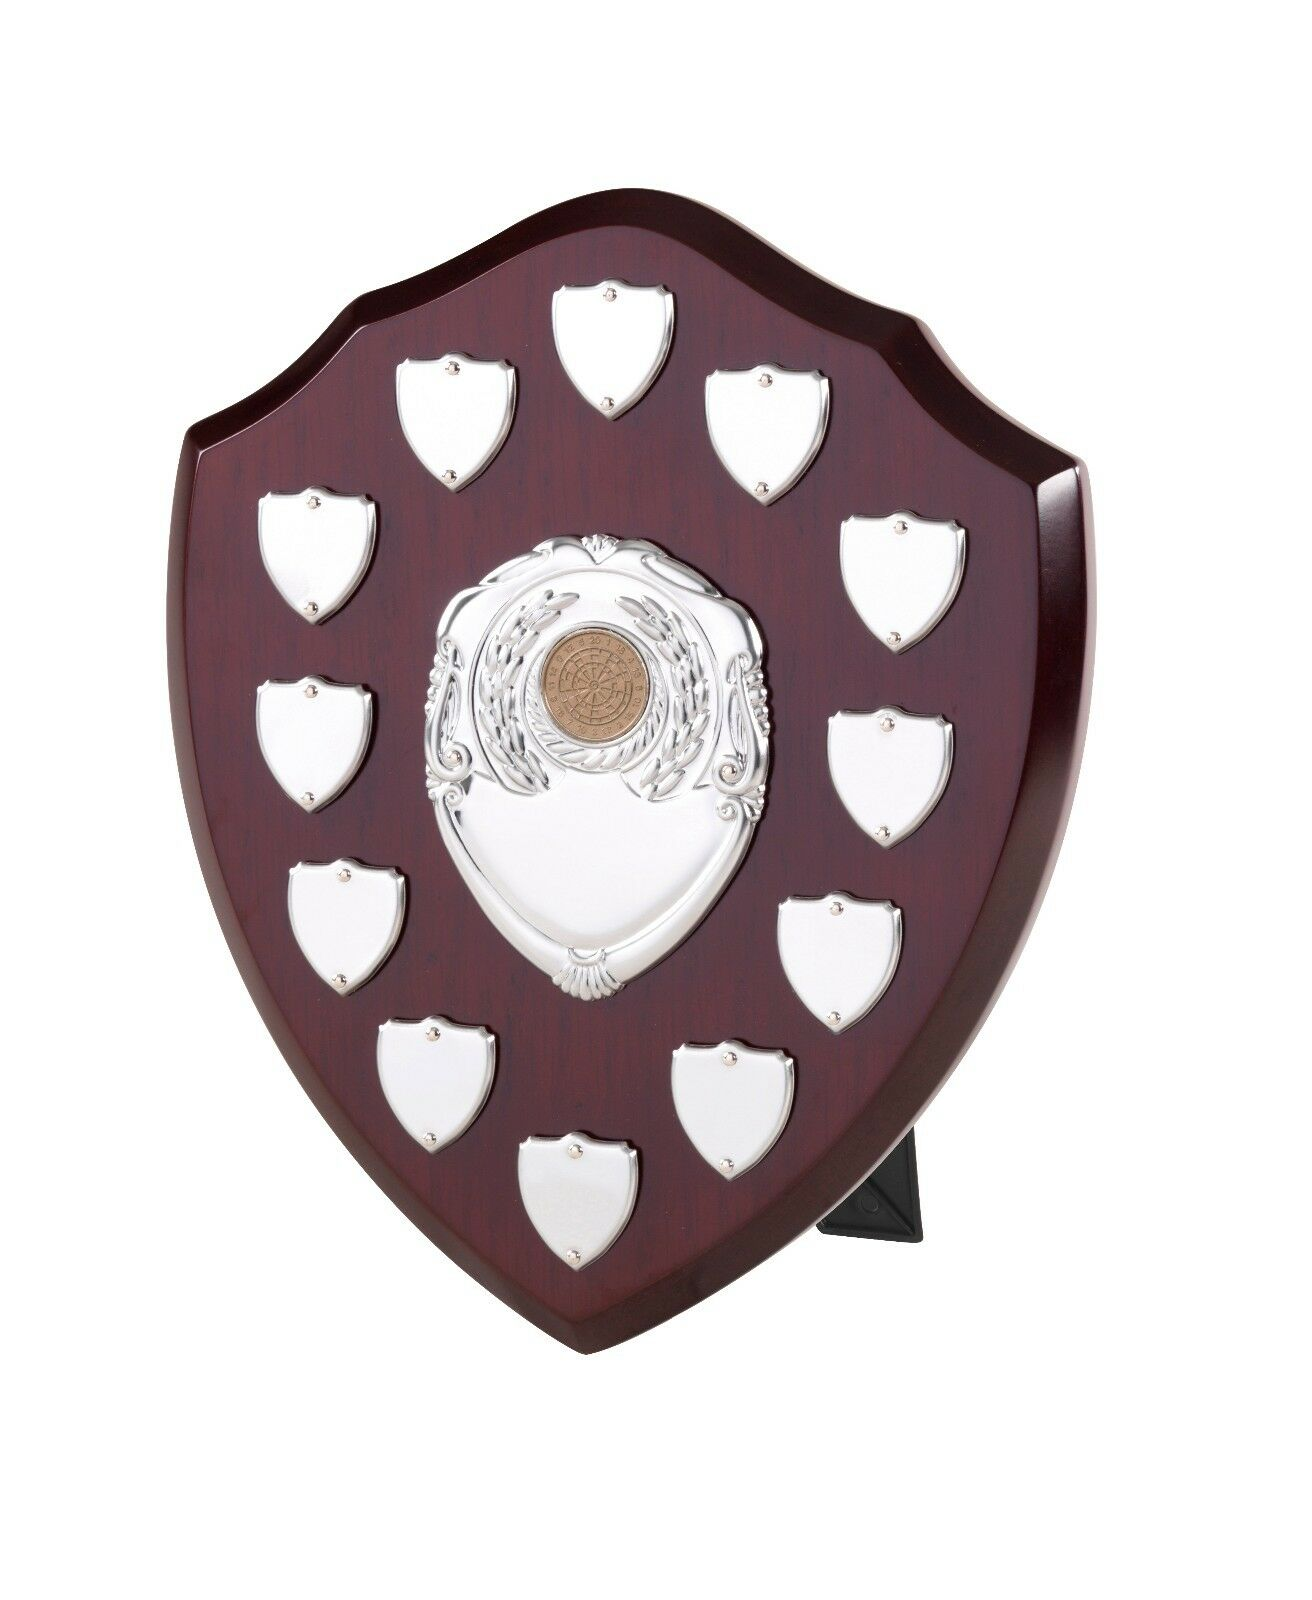 250mm  Annual, Perpetual Shield, 12 Year, FREE Engraving (BPS10)swt